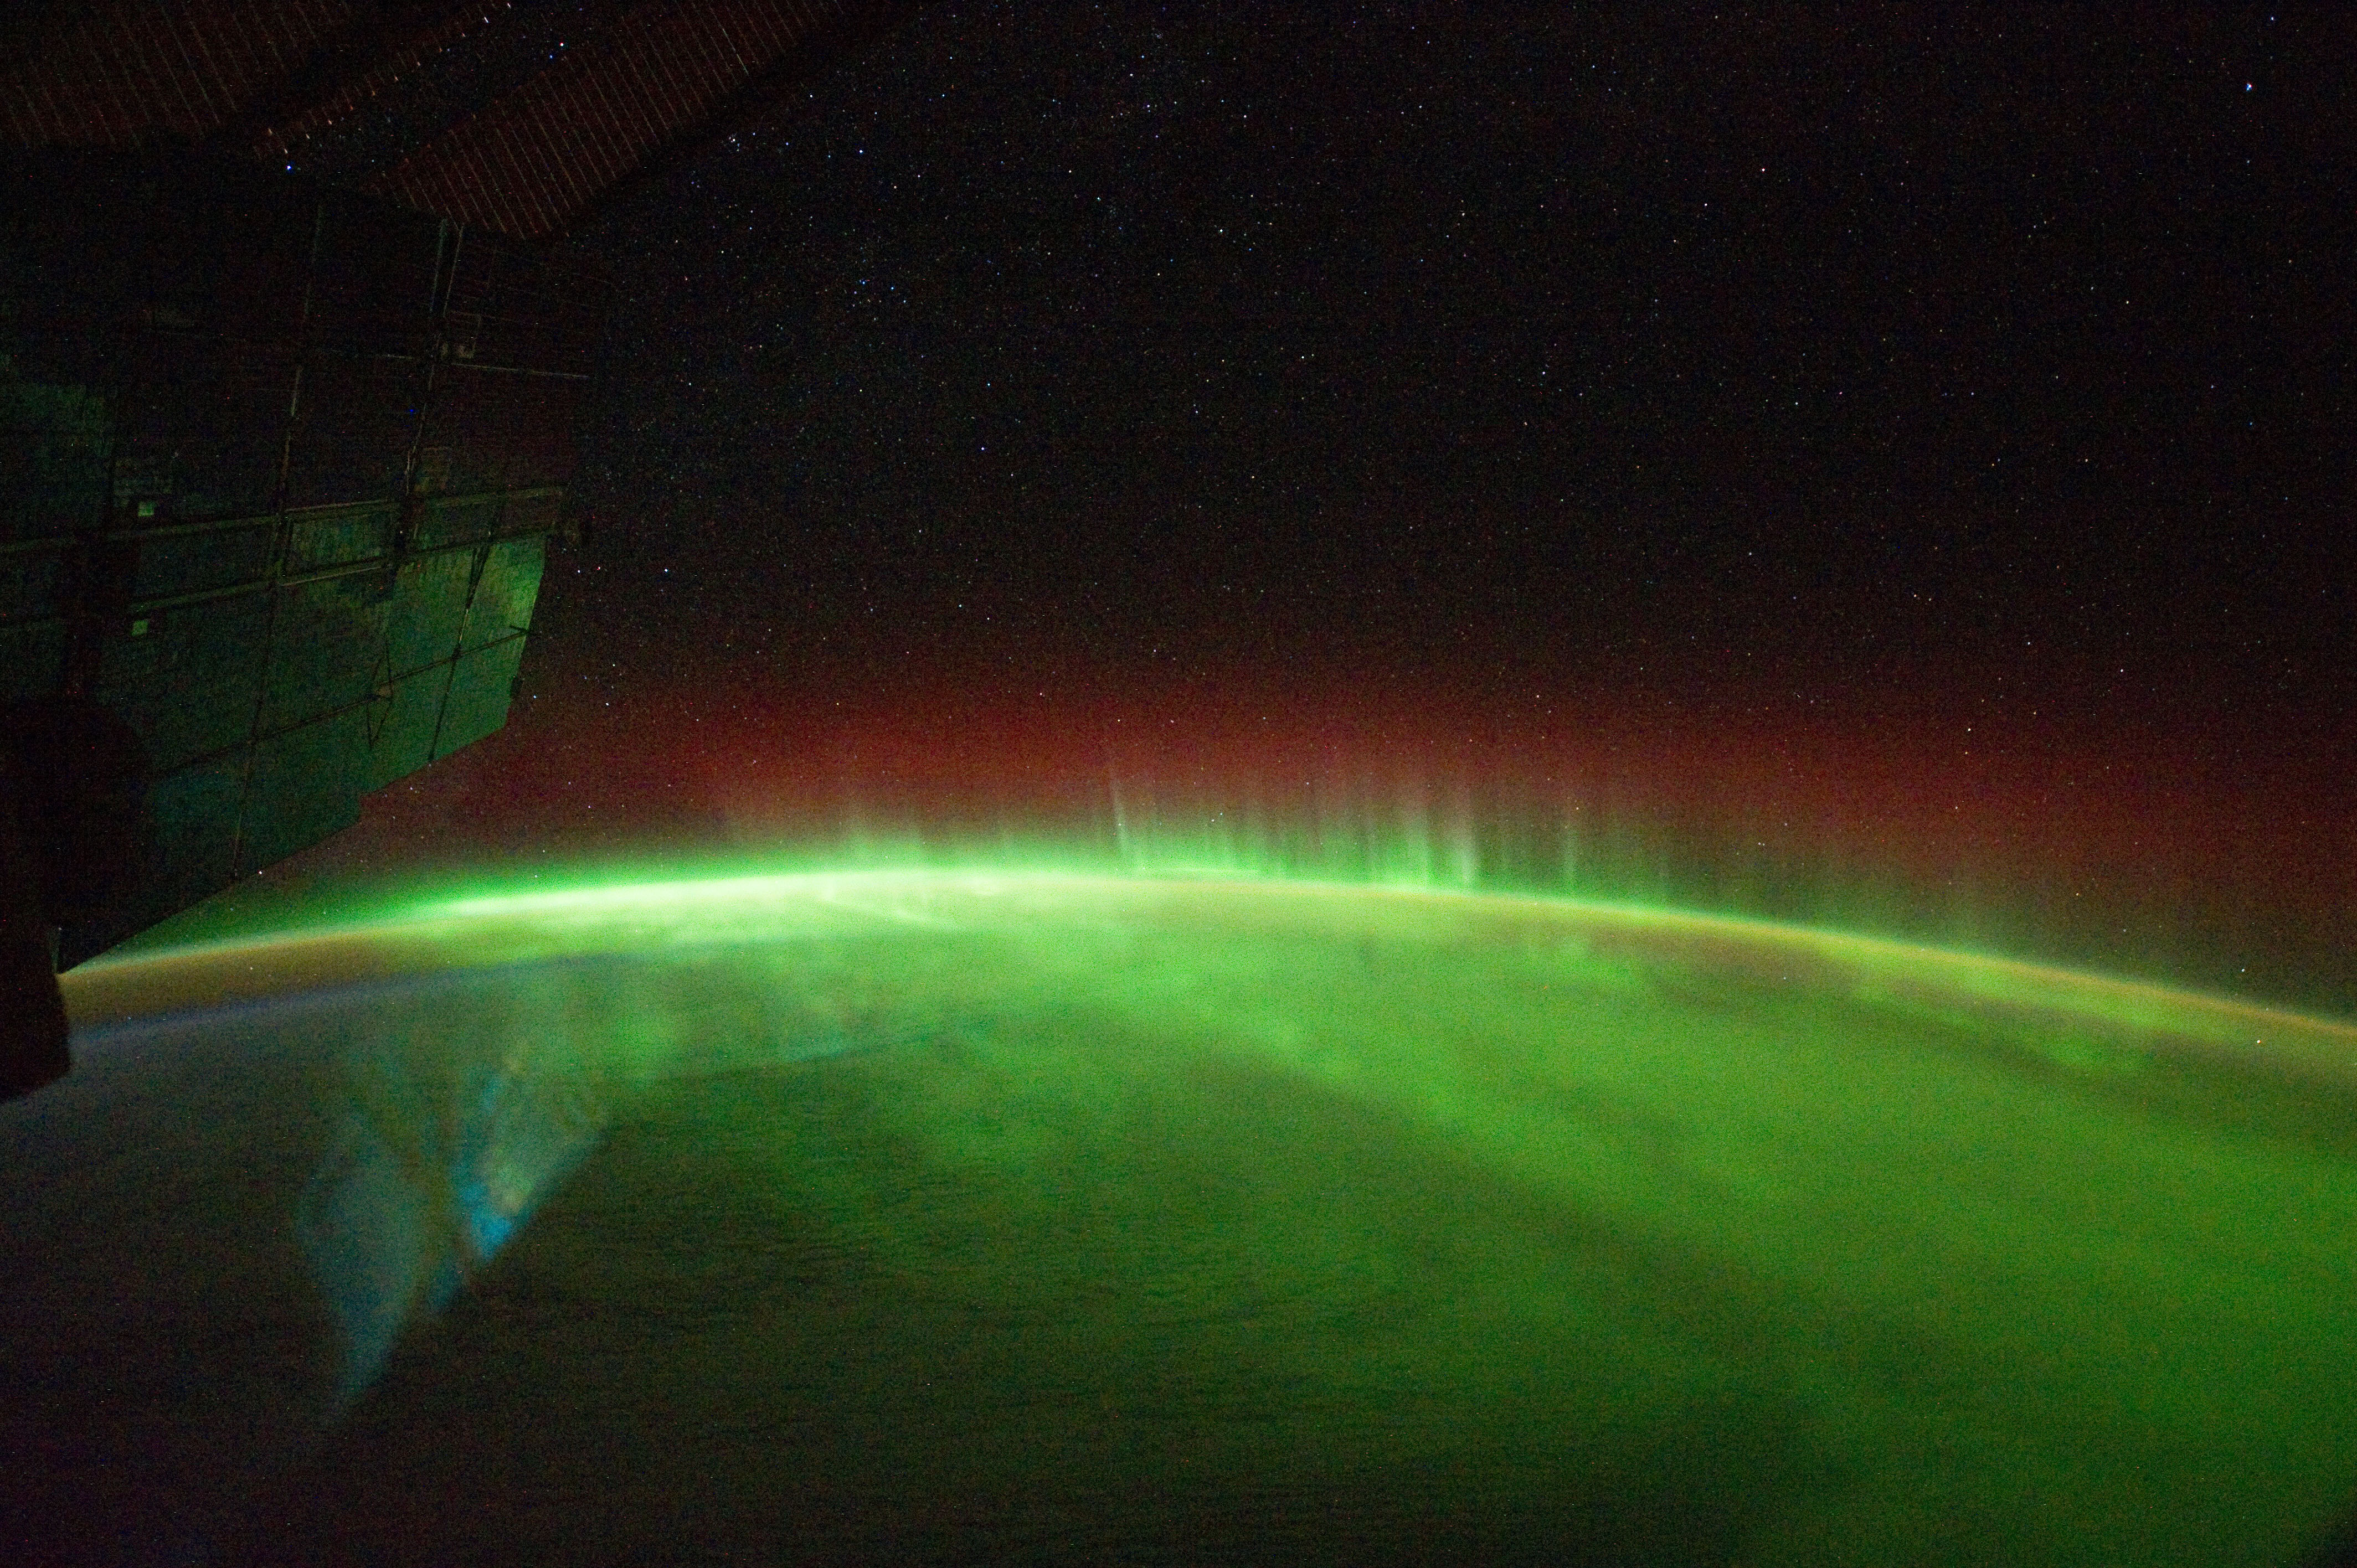 Aurora Australis Taken by Expedition 29 Member